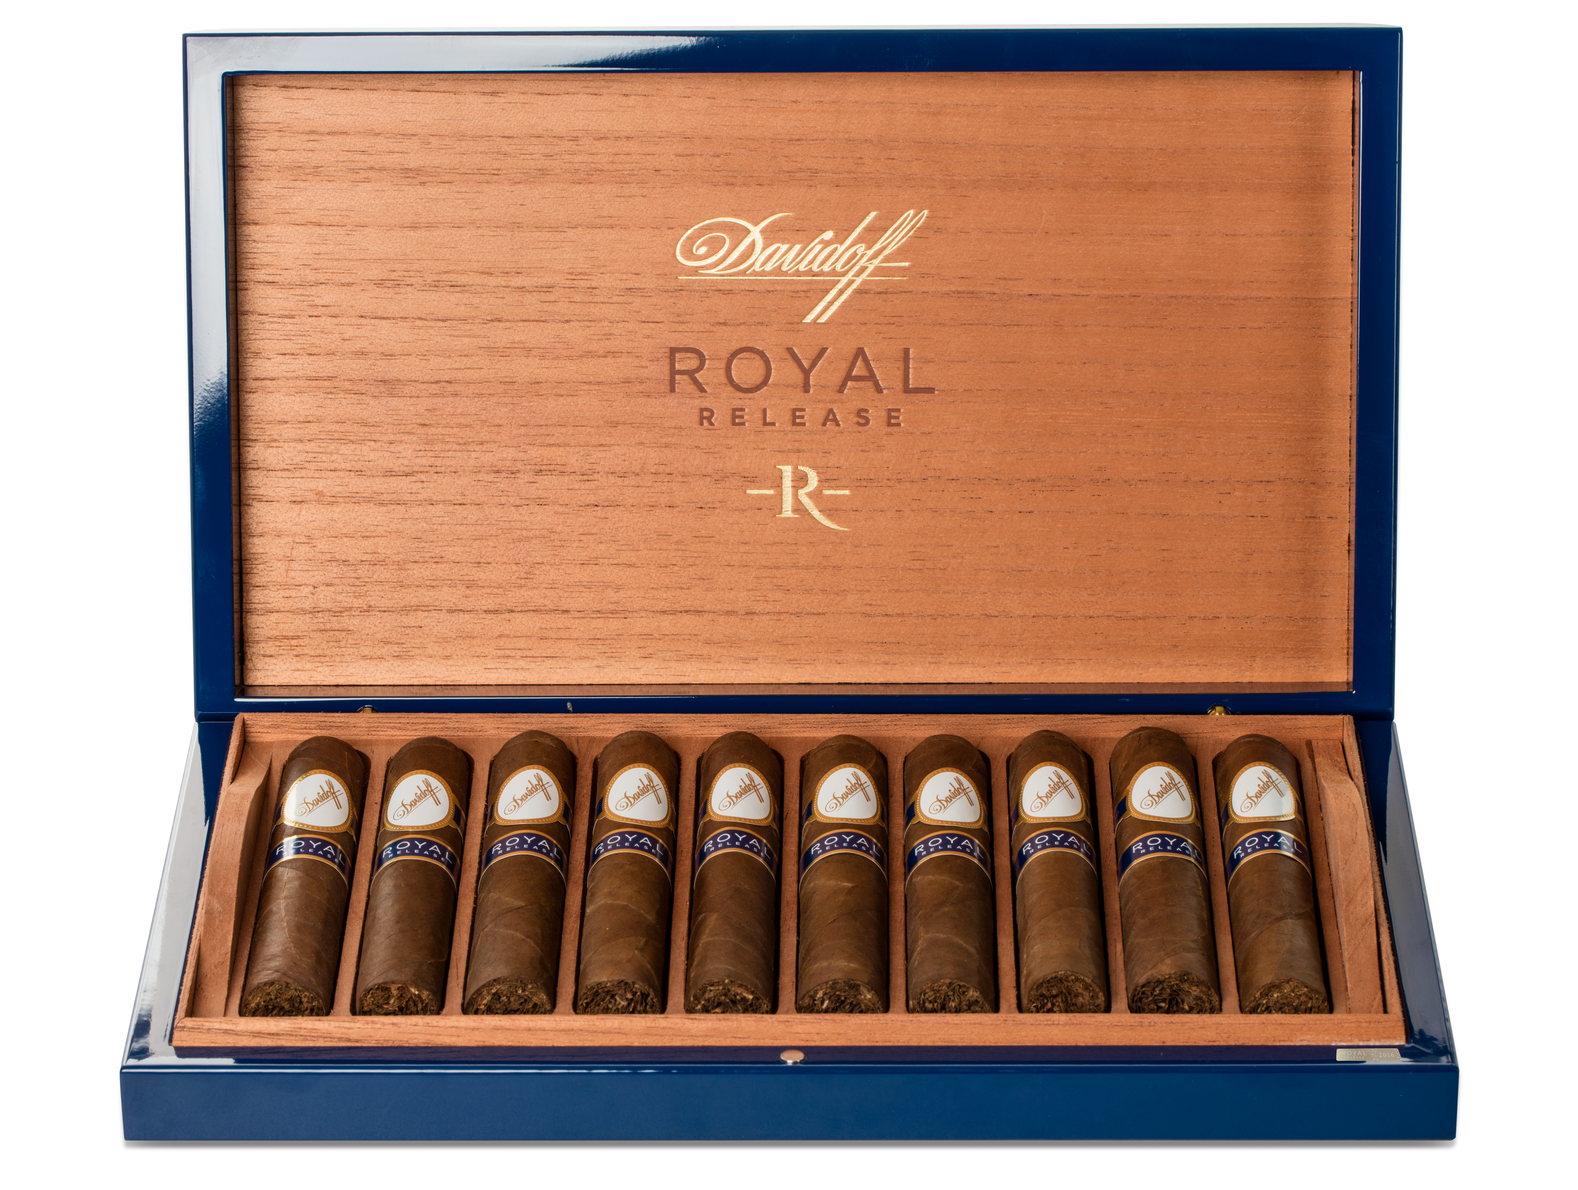 davidoff_royal_release_robusto